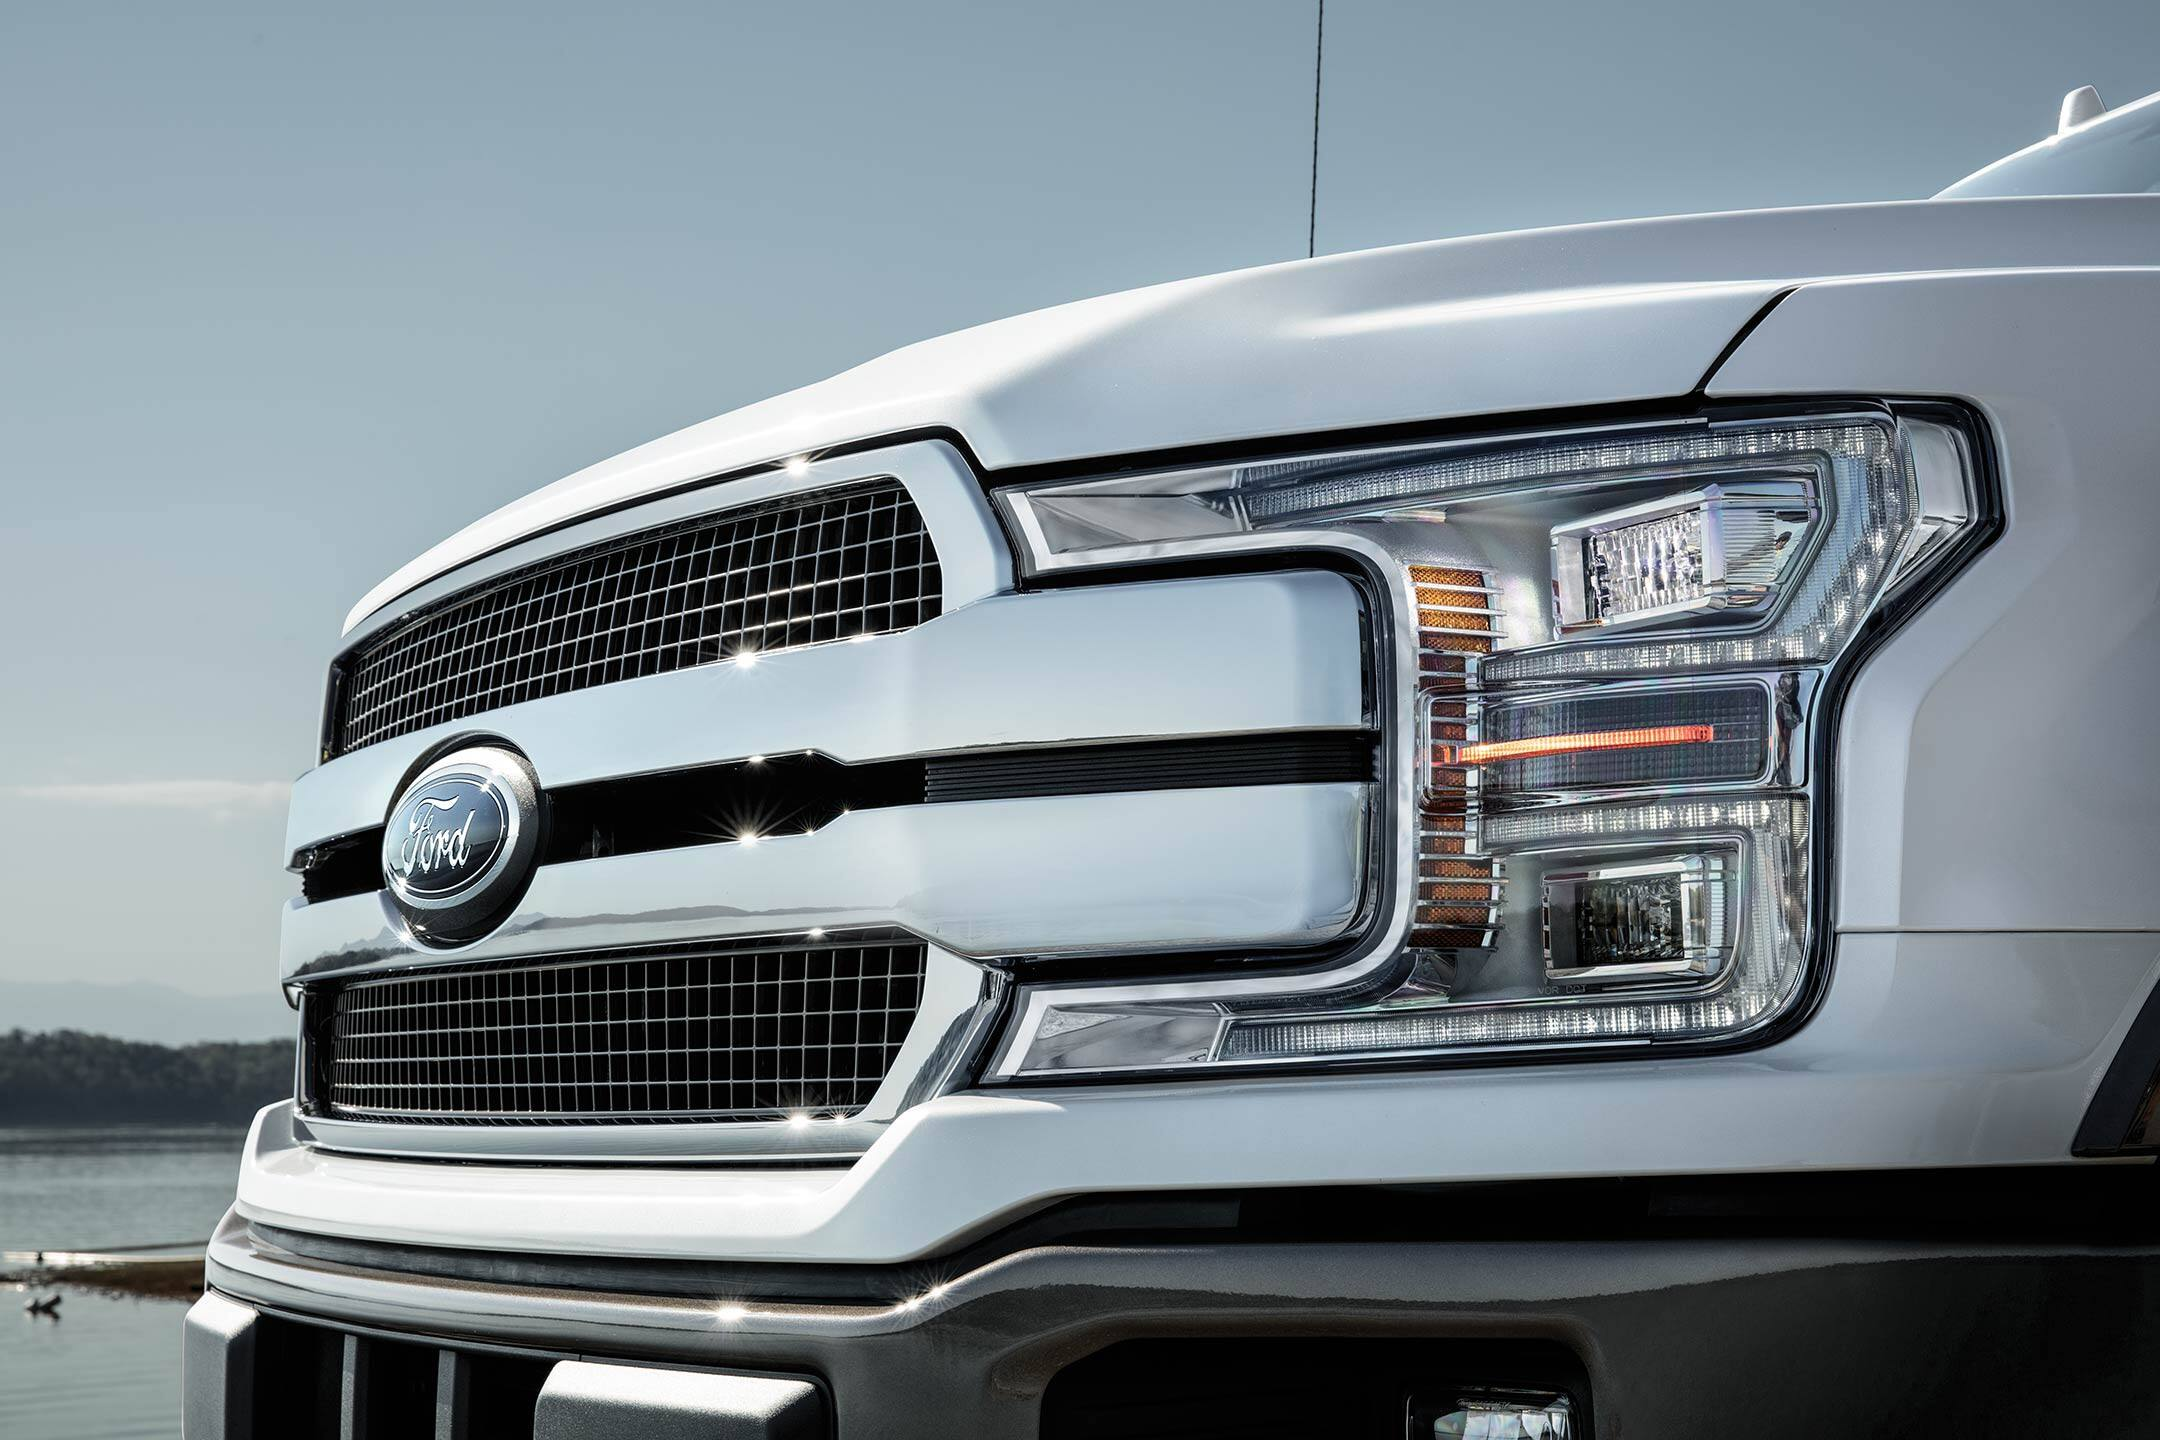 headlight and grille of a white 2019 ford f-150